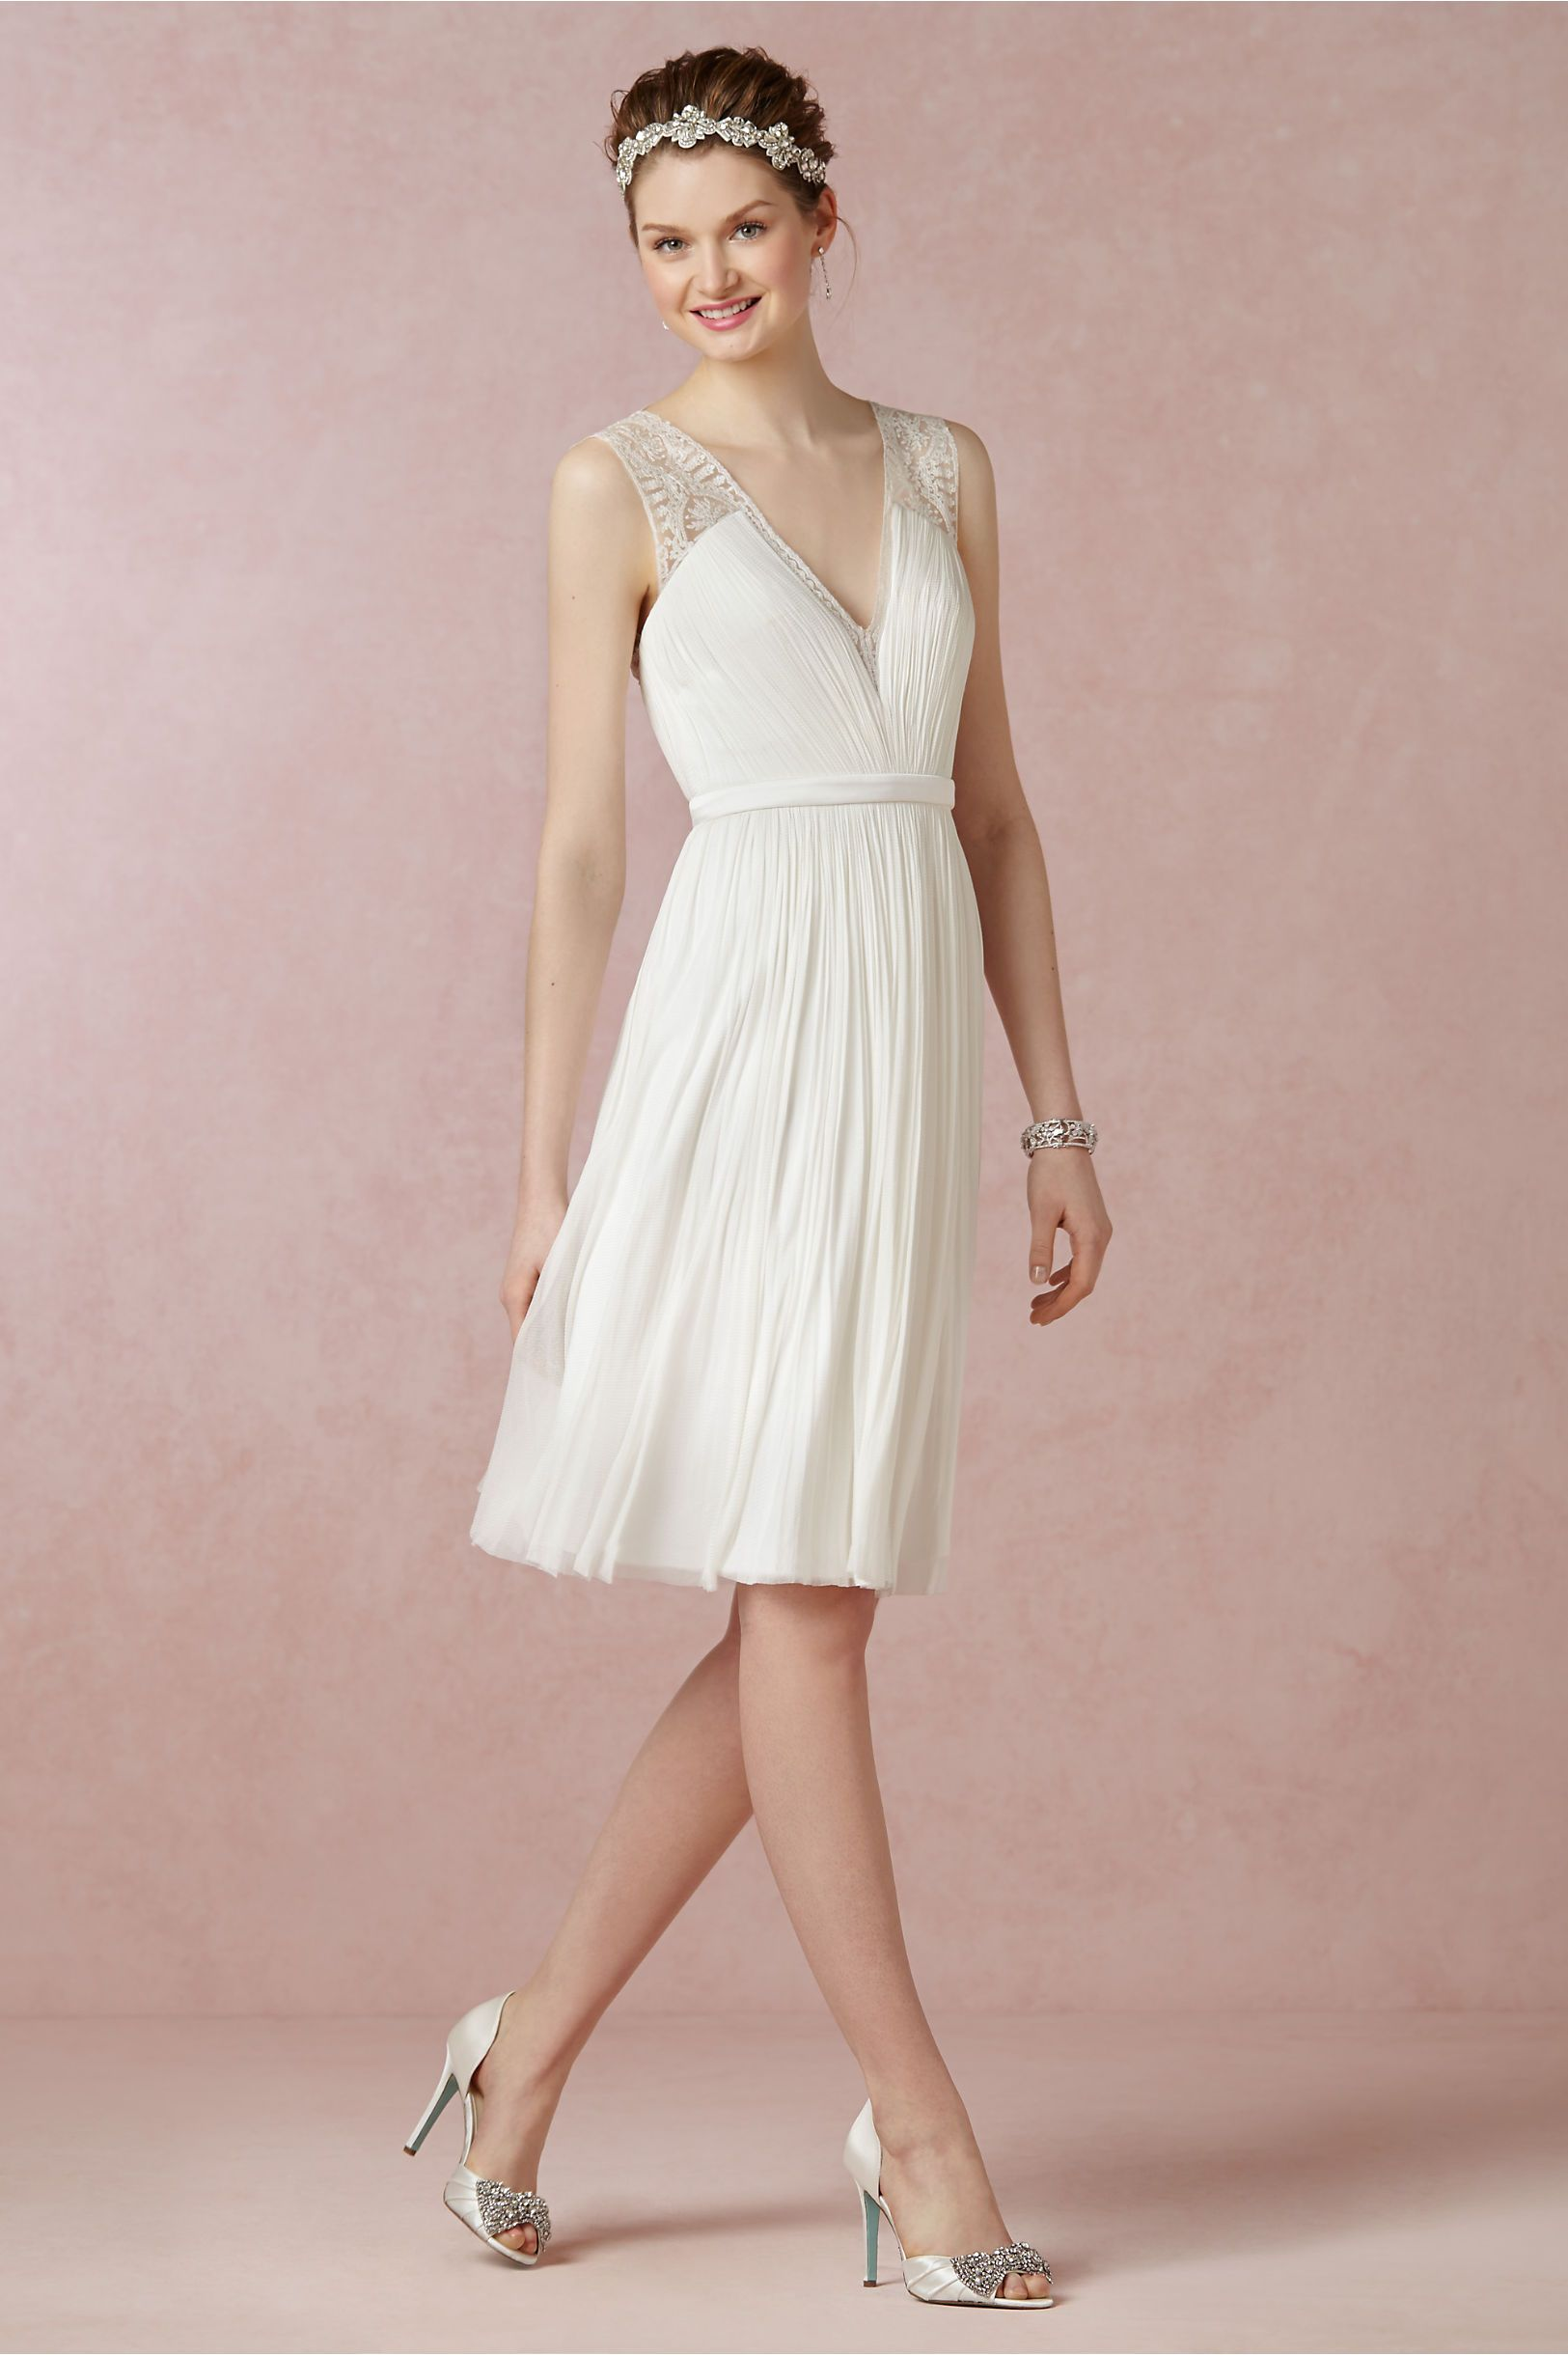 Valley Dress from BHLDN | dresses | Pinterest | Boda civil, Vestidos ...